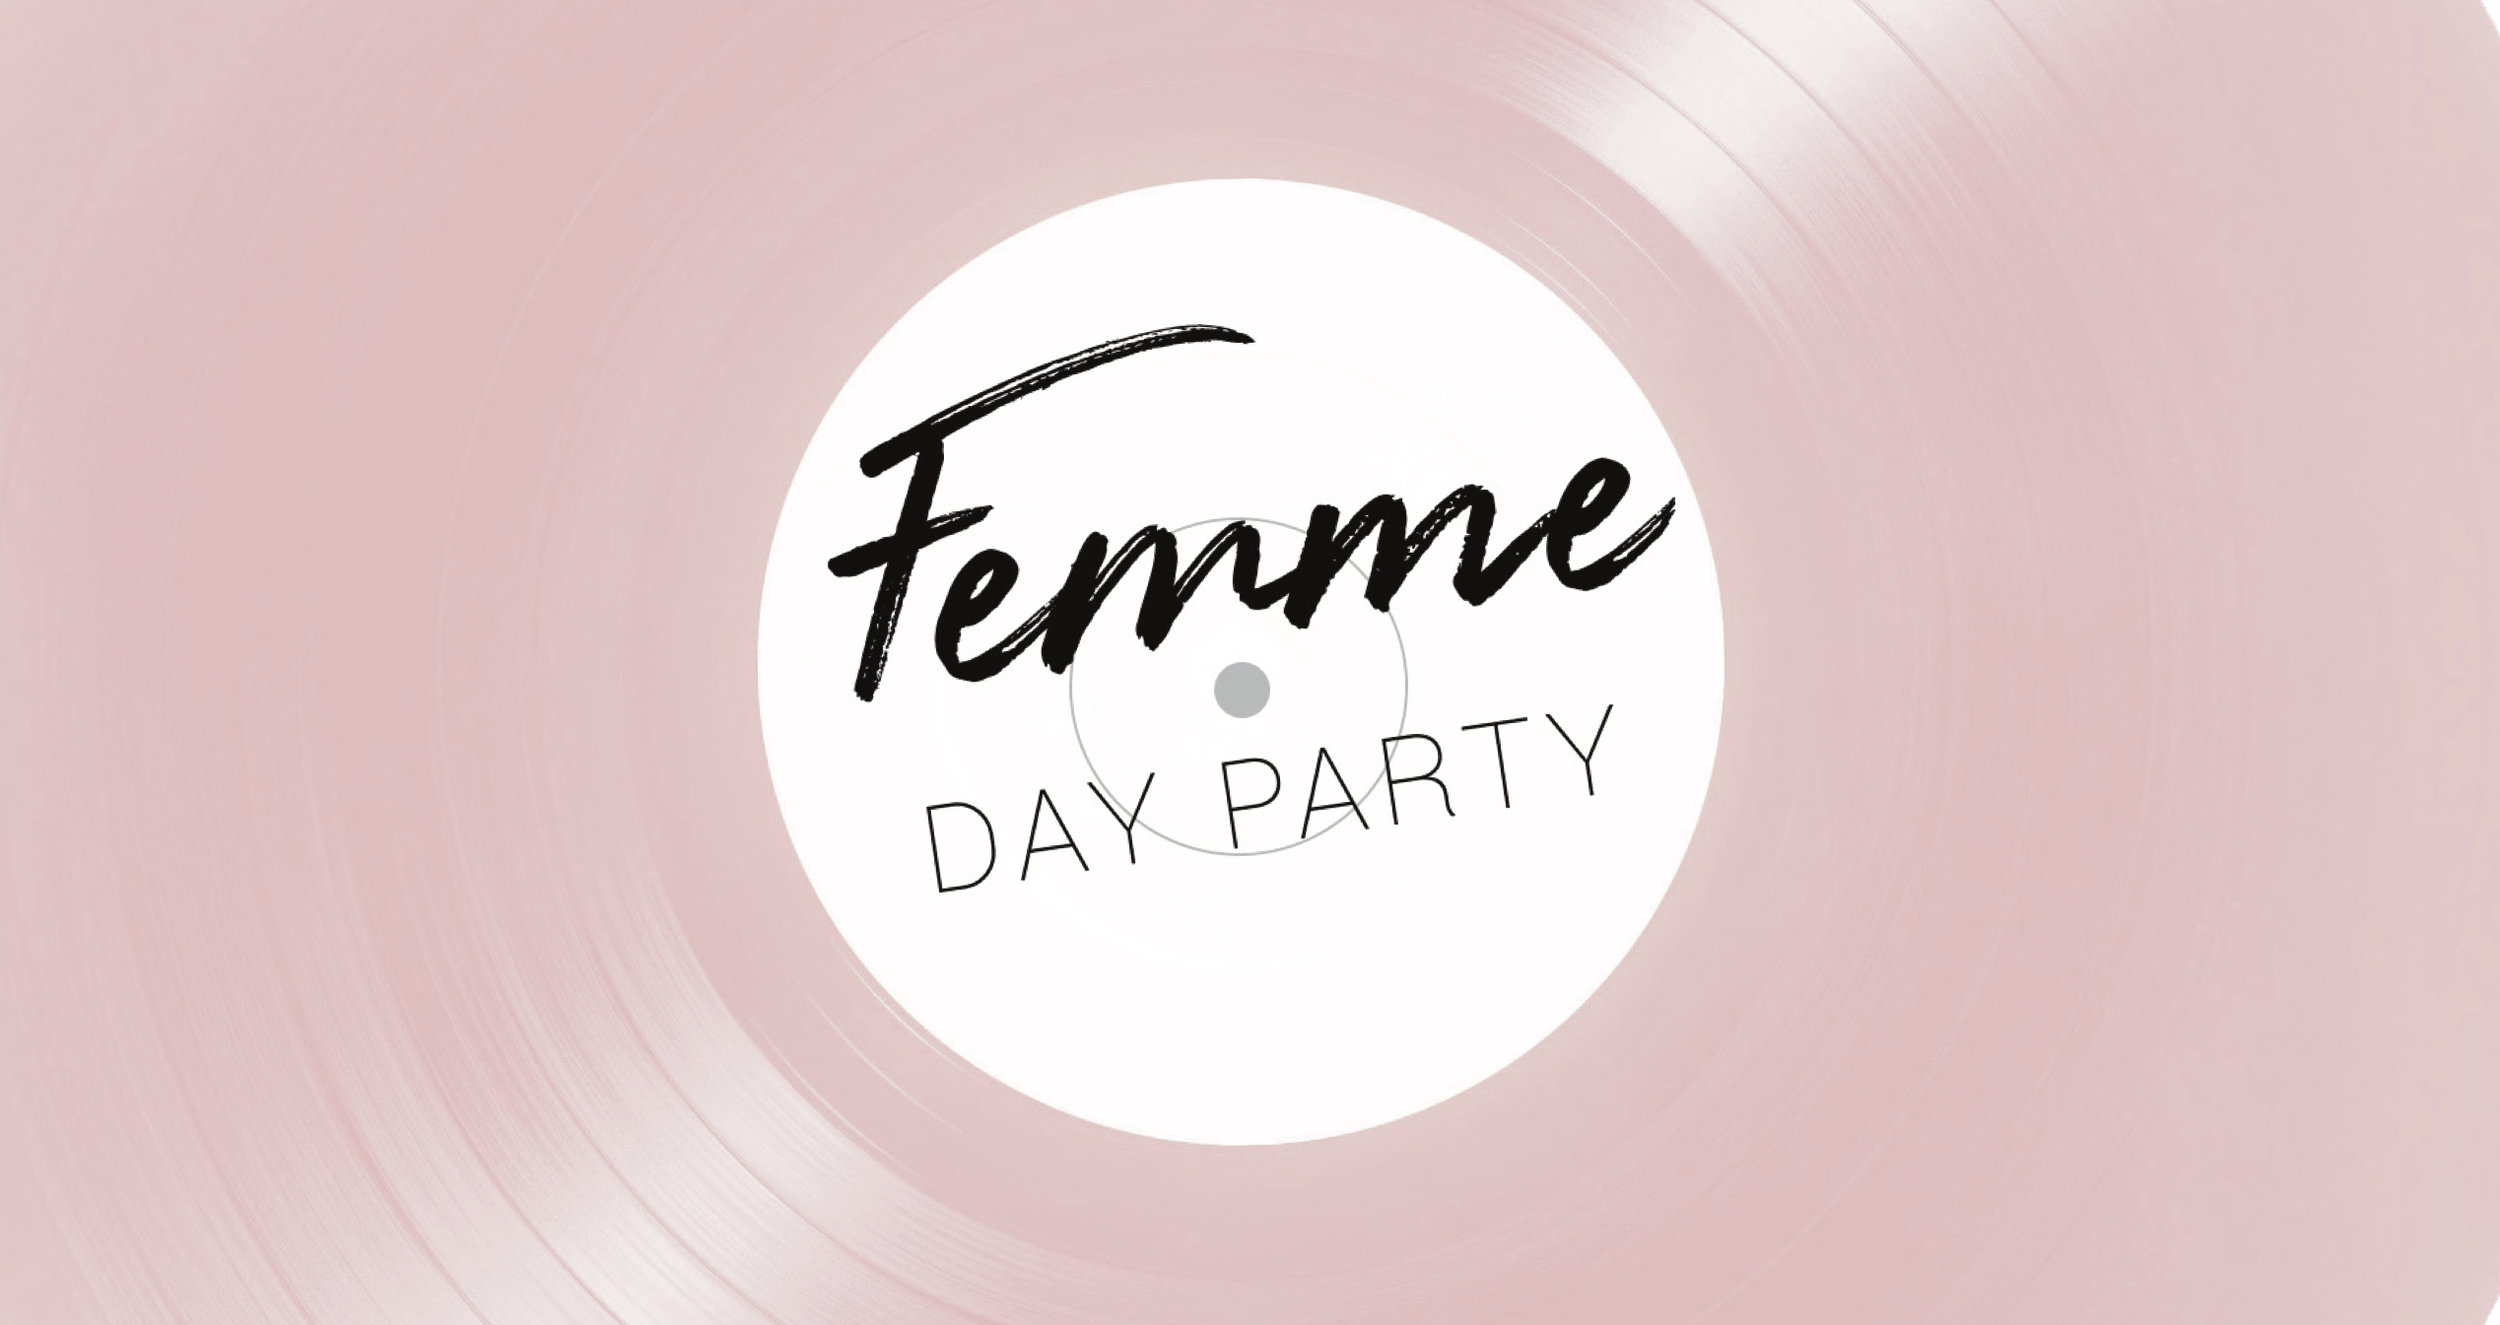 Femme Day Party - Sundays, 3-10pmExpanding the day party to highlight femme/female/non-binary dance crews, DJ's, live performers, pop-ups from lashes and podcasts to food trucks and sweet treats! #femmedaypartyJune 9, 23August 18September 1, 15